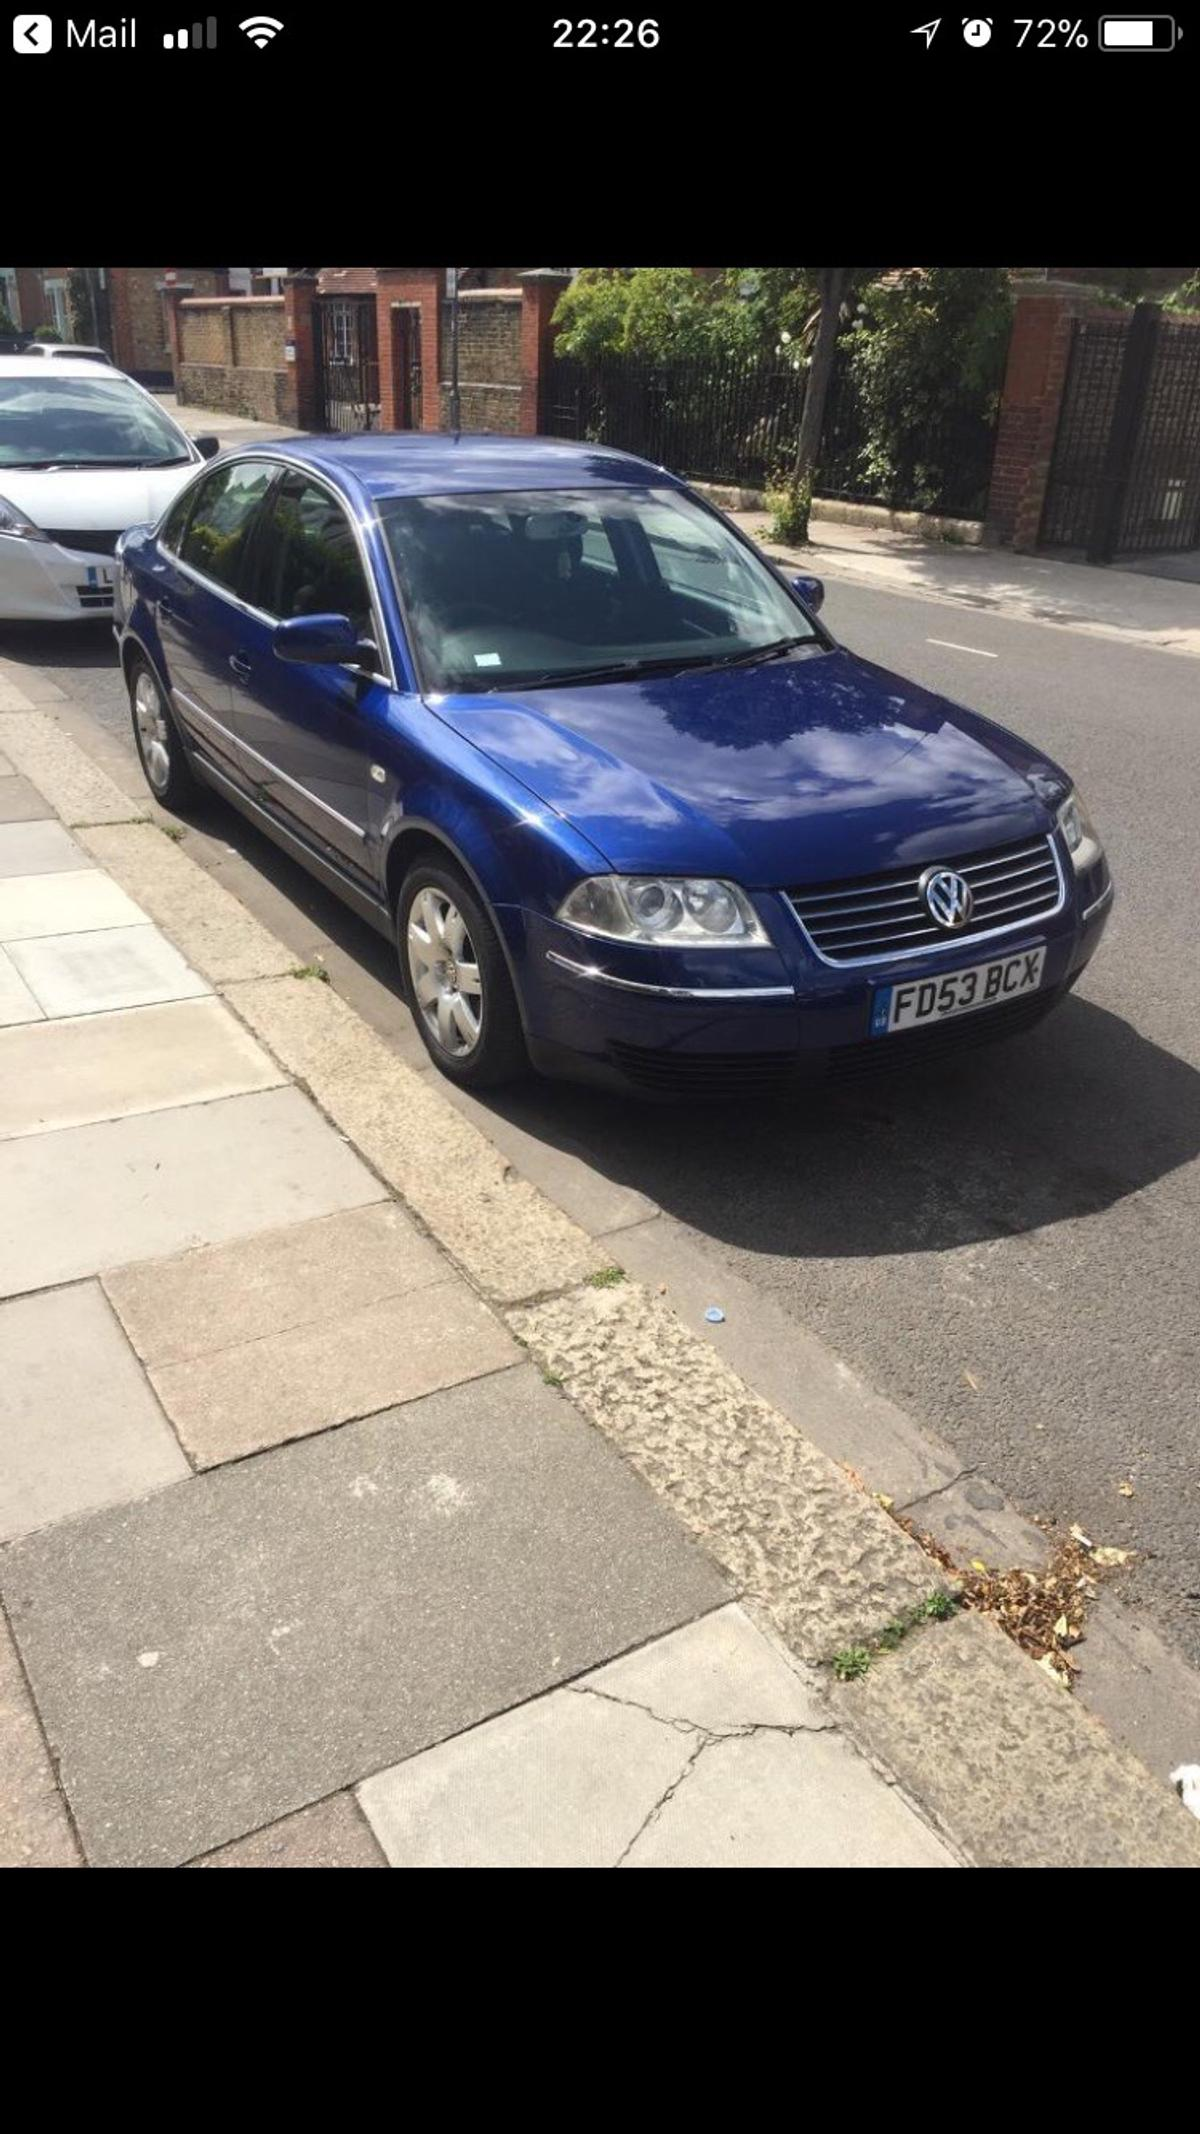 VW PASSAT 1 9TDI SPORT PD130 in W6 Fulham for £750 00 for